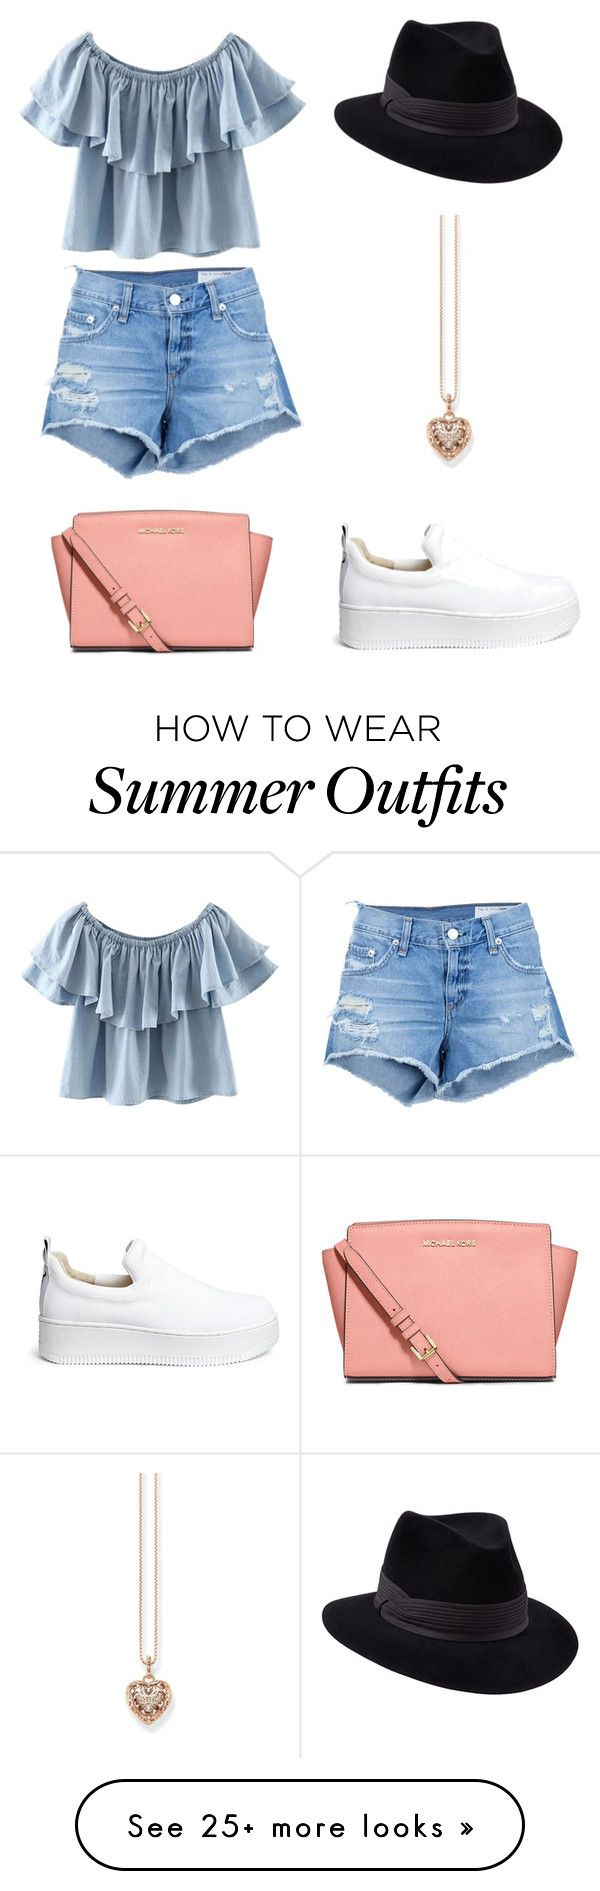 """Summer outfit"" by jasmine-han-qinying on Polyvore featuring rag & bone/JEAN, Chicnova Fashion, Penmayne of London, Windsor Smith, MICHAEL Michael Kors and Thomas Sabo"